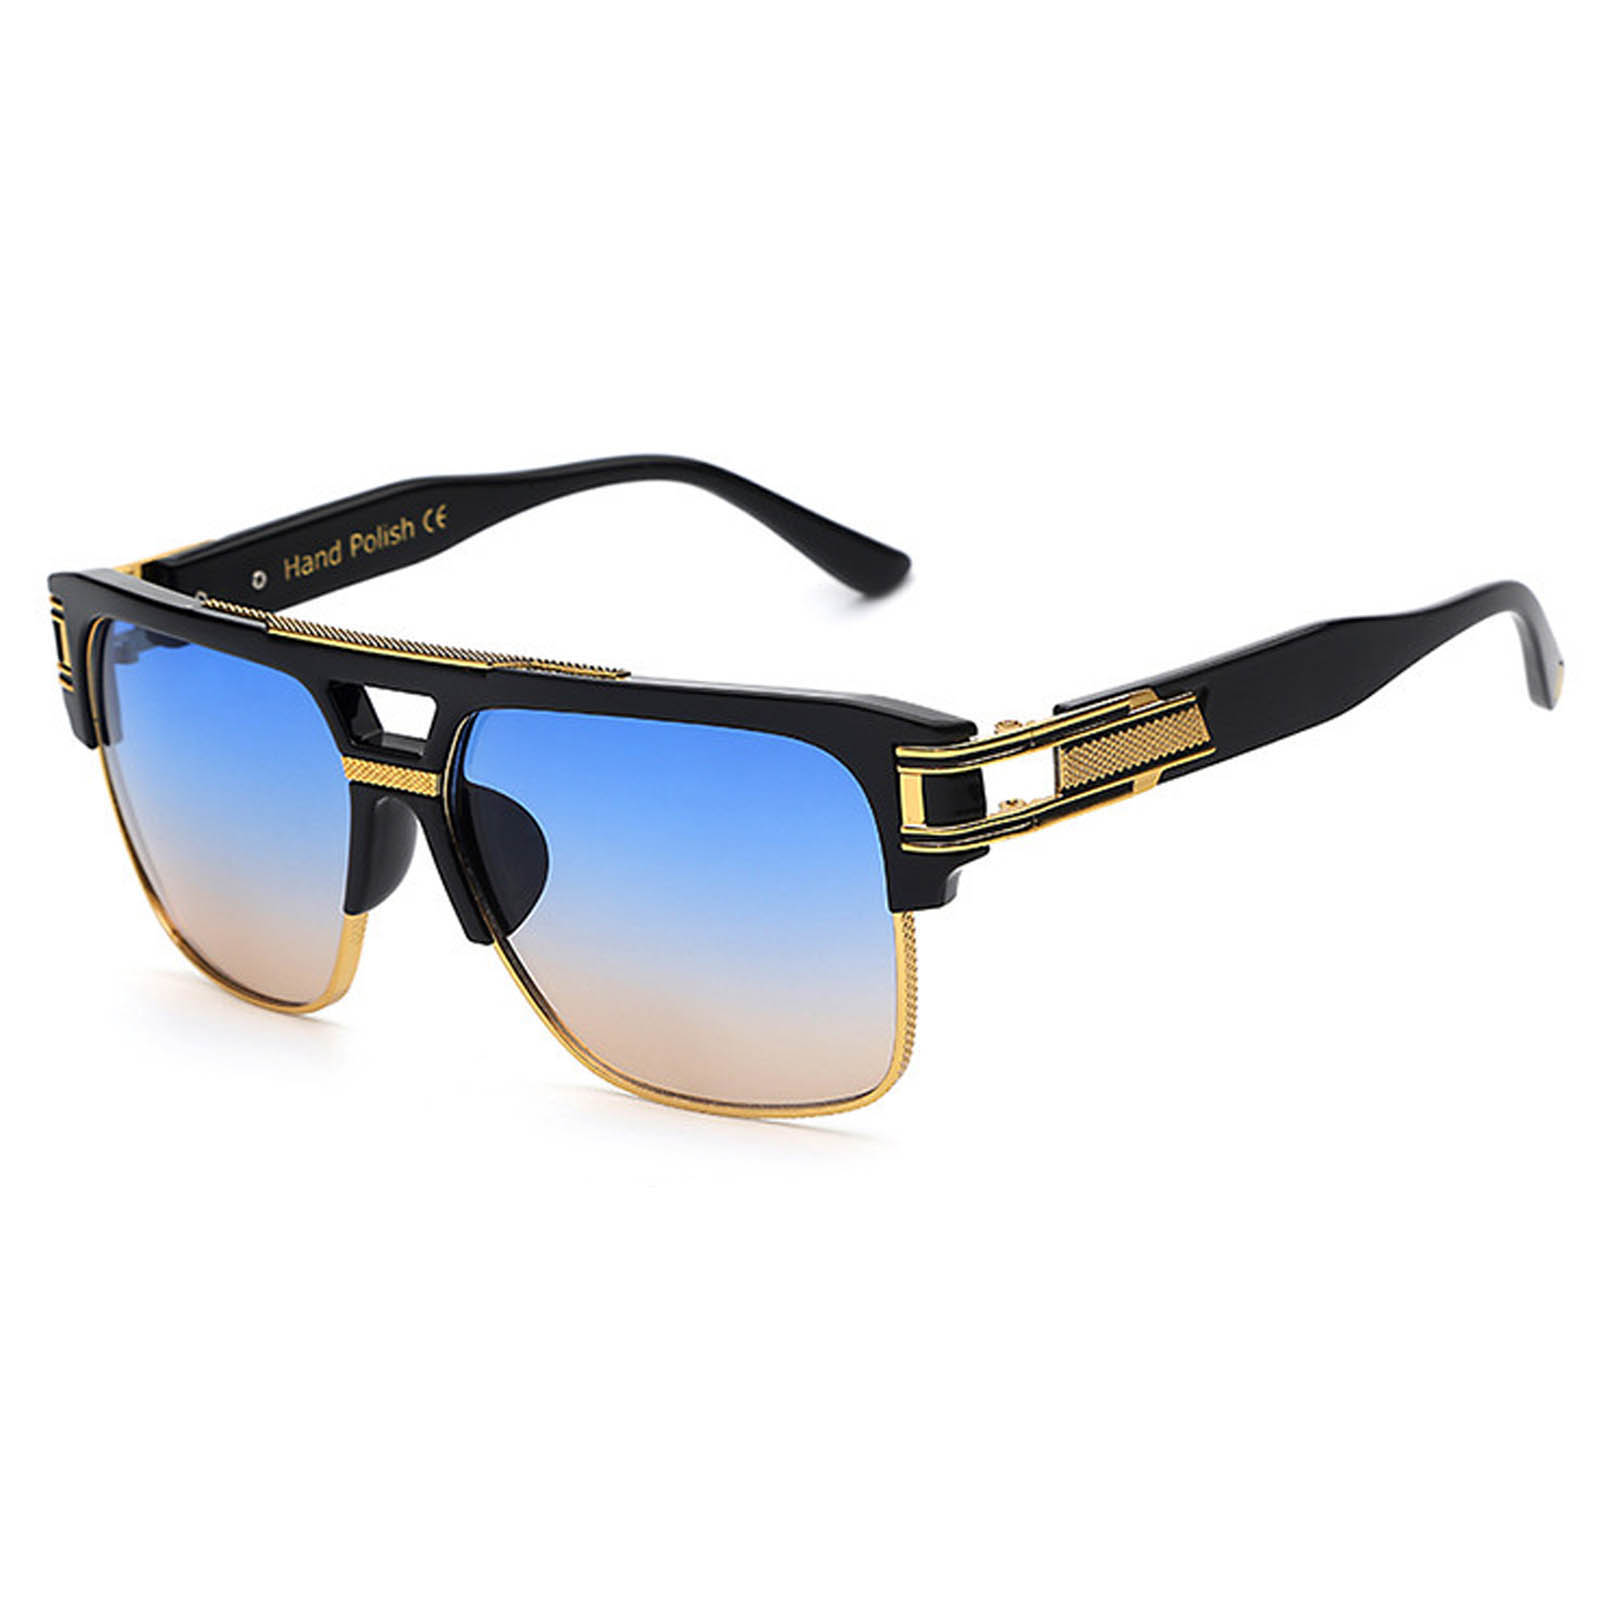 OWL ® 020 C4 Rectangle Eyewear Sunglasses Women's Men's Plastic Black Frame Colored Lens One Pair